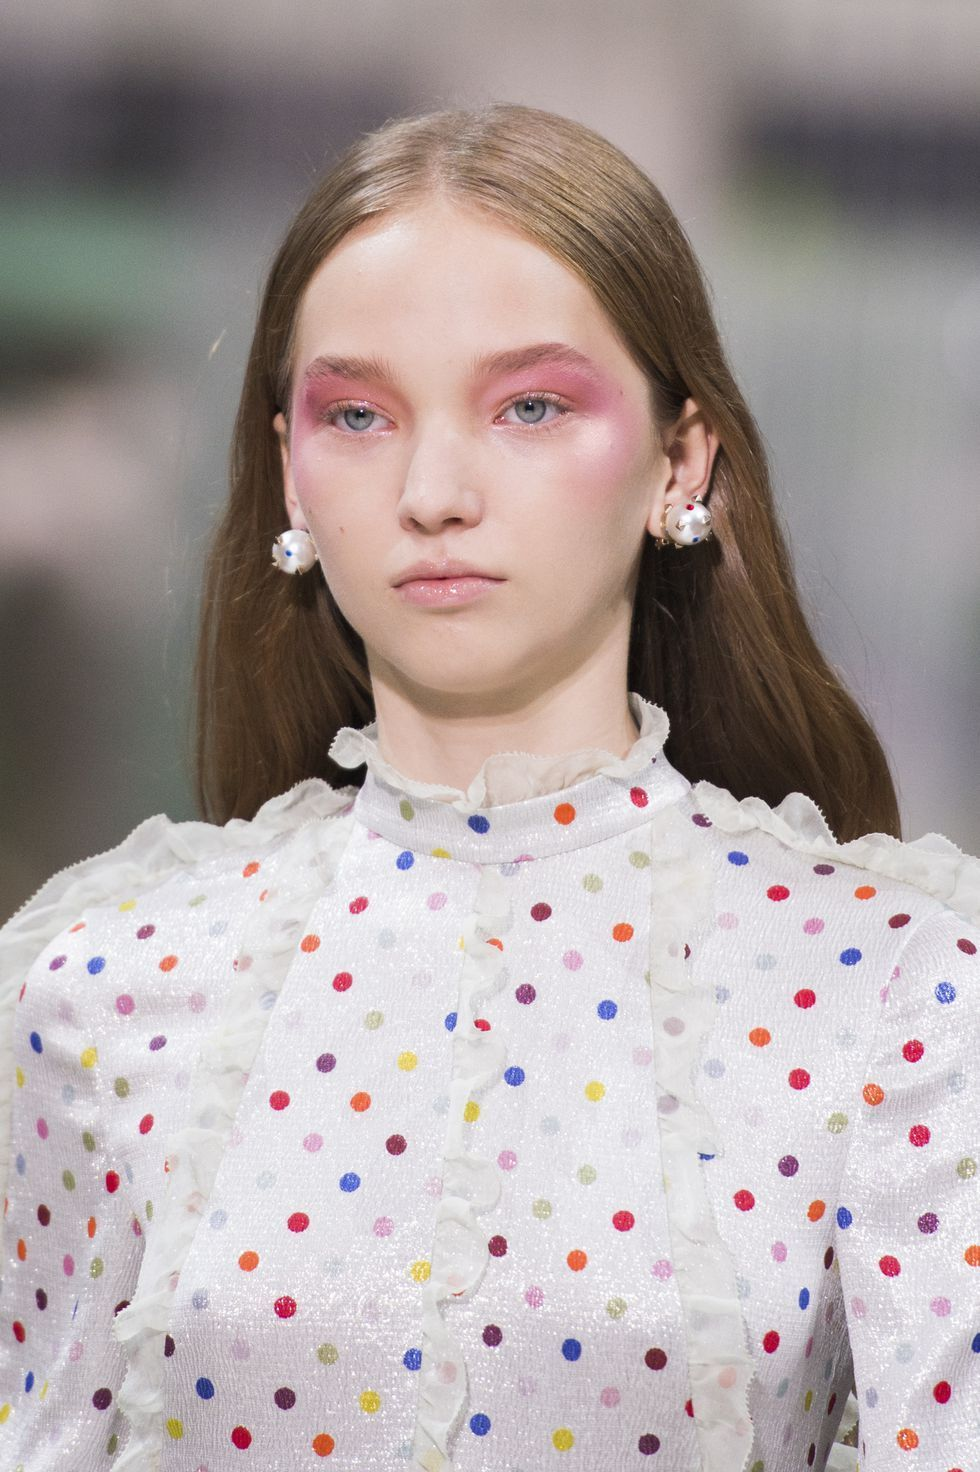 Spring Summer 2020 Hair Trends.Mint The Spring Summer 2020 Colour Trend Makeup 2018